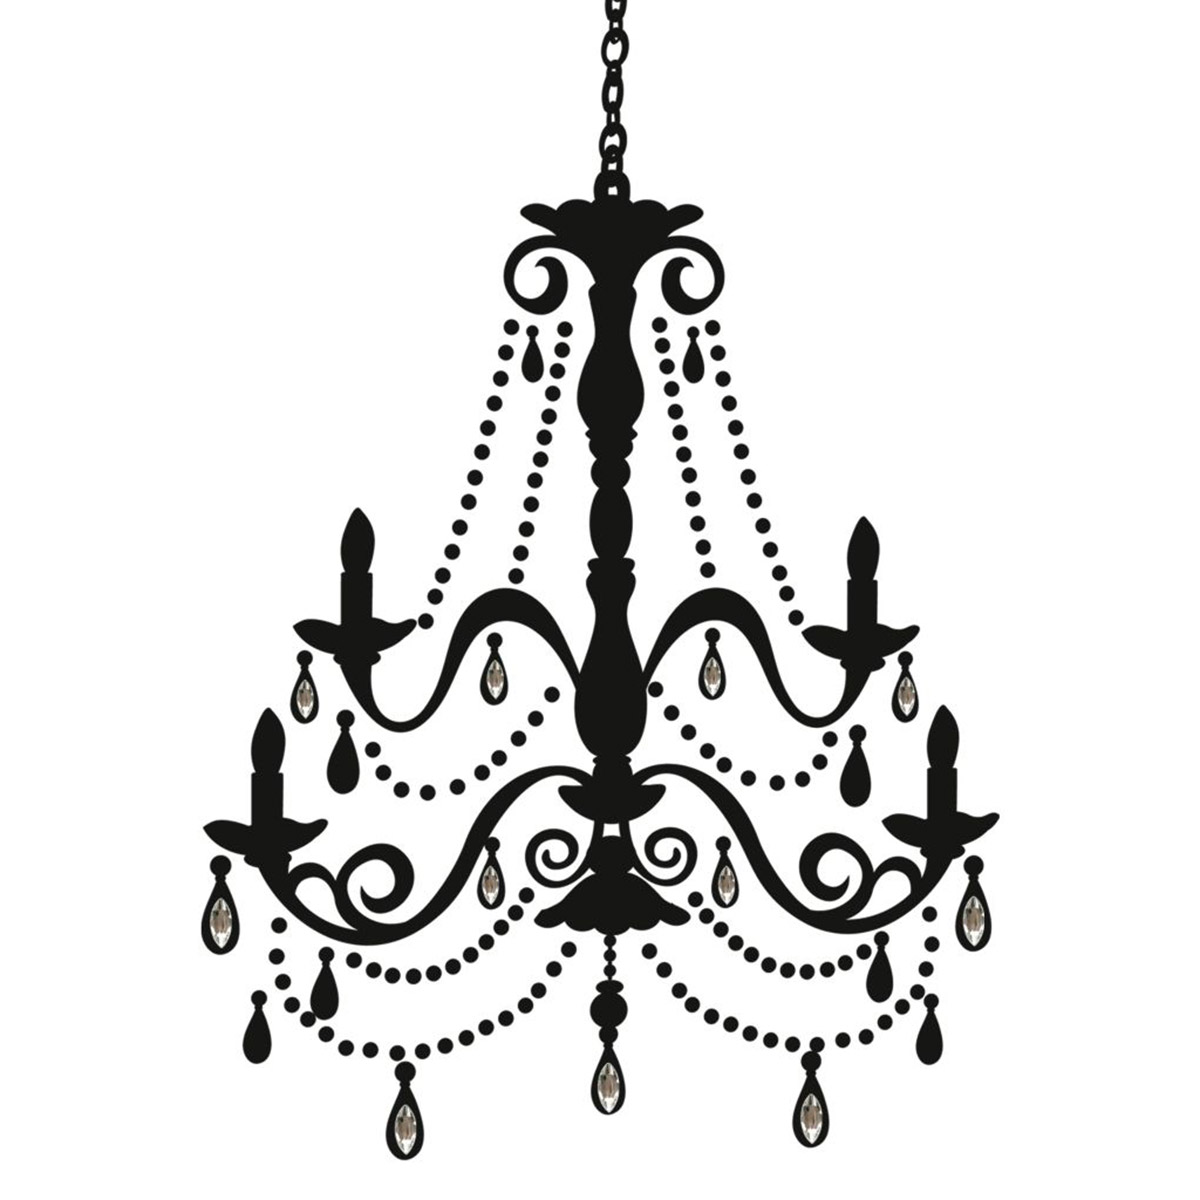 1200x1200 Elegant Chandelier Silhouette Giant Wall Decal Removable Decor